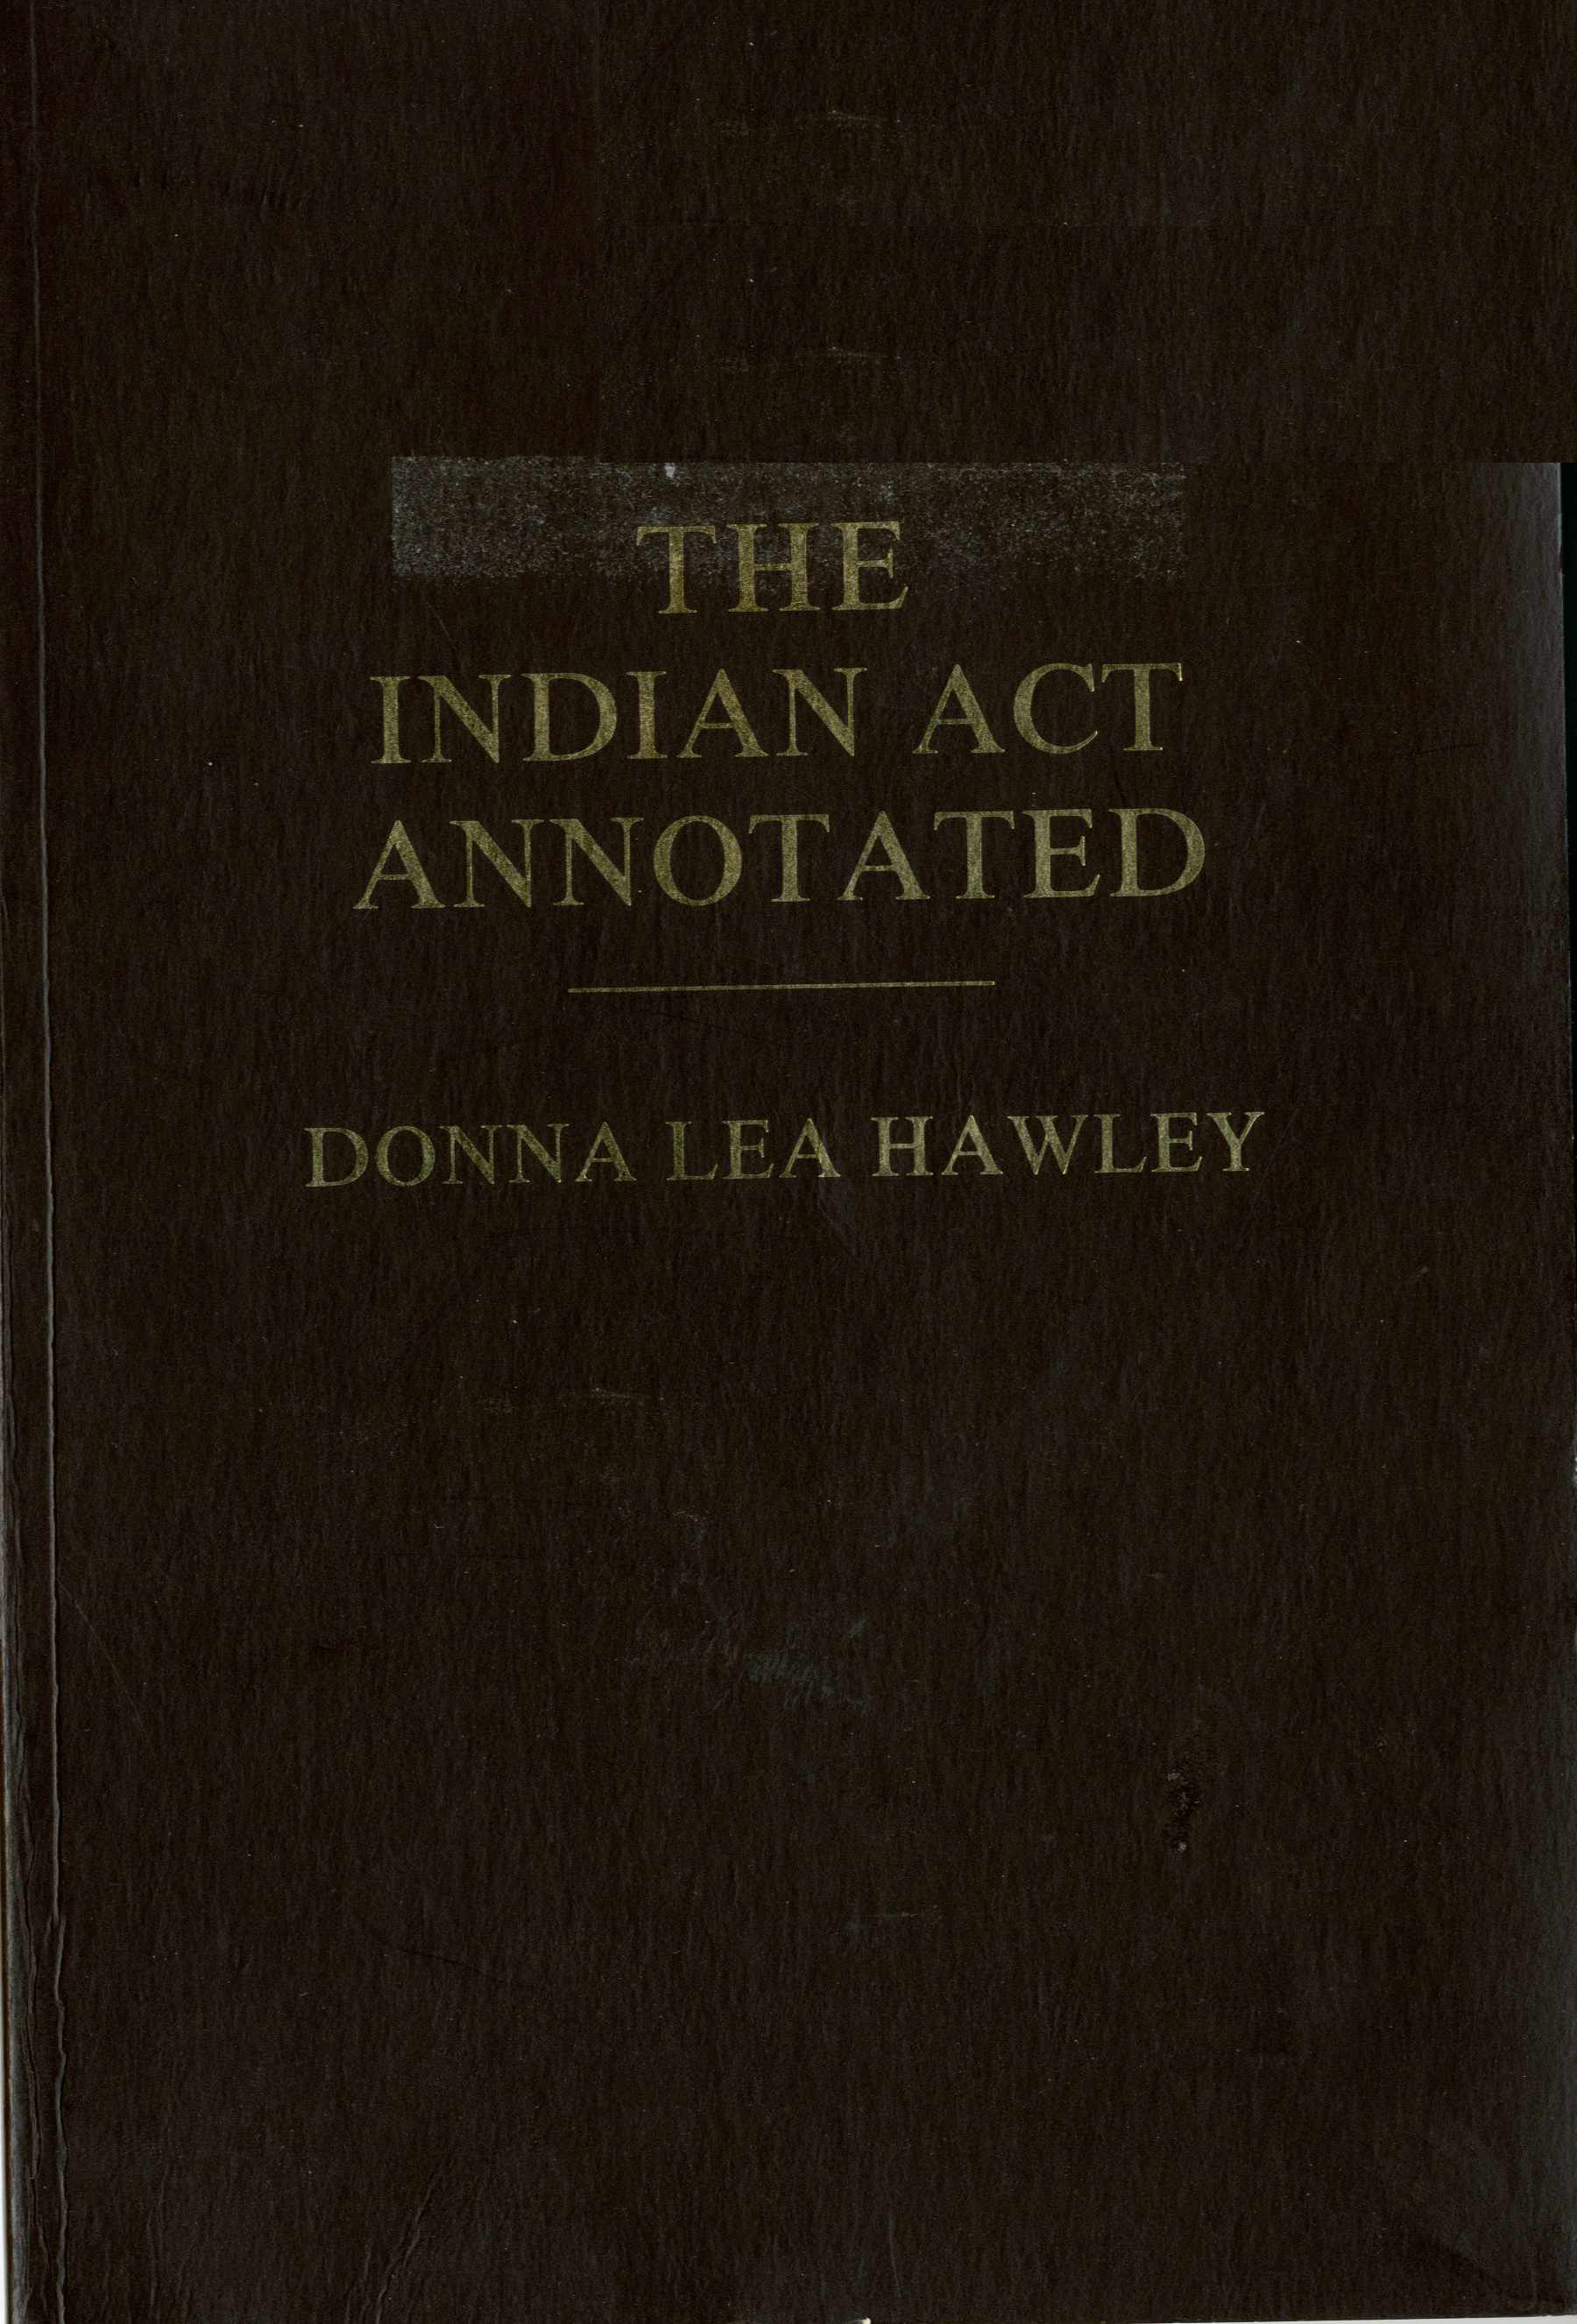 The Indian Act Image